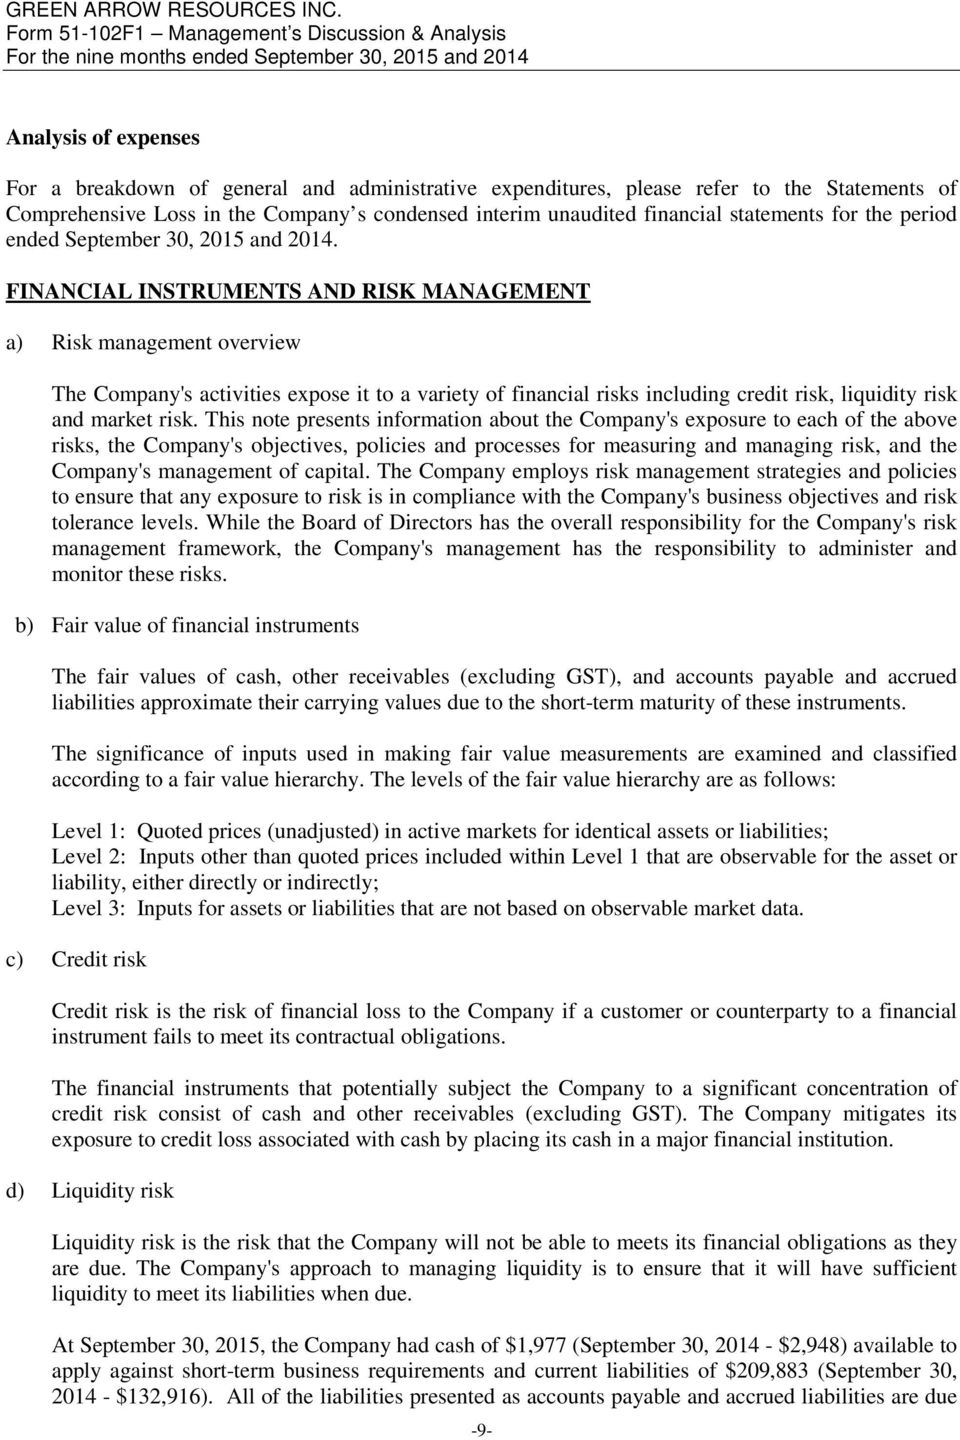 FINANCIAL INSTRUMENTS AND RISK MANAGEMENT a) Risk management overview The Company's activities expose it to a variety of financial risks including credit risk, liquidity risk and market risk.